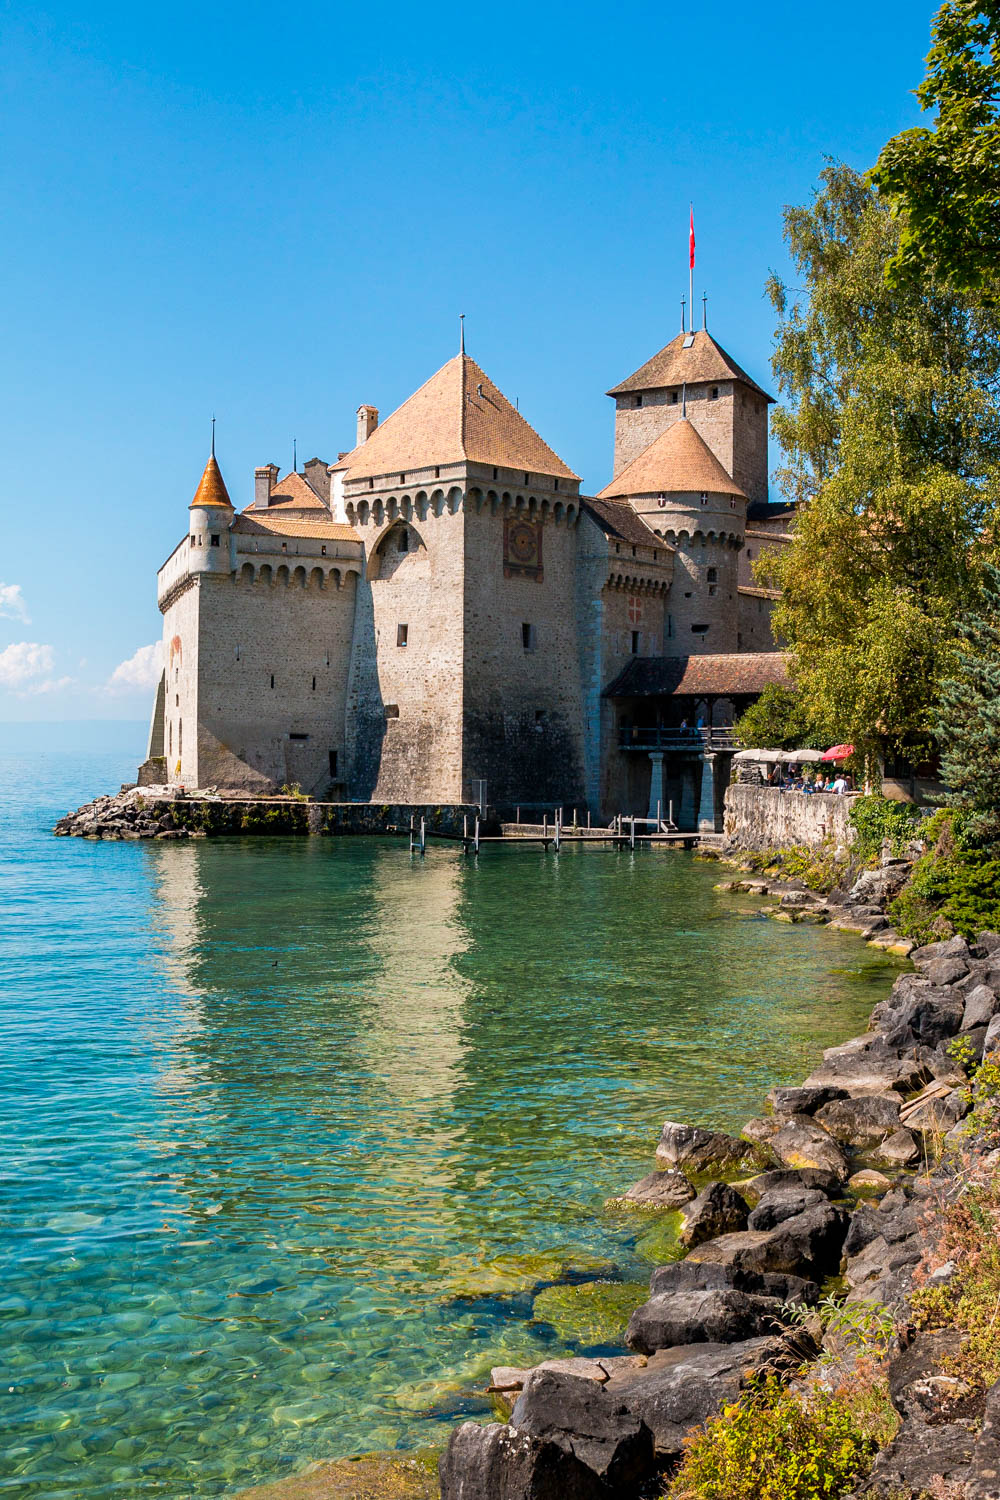 Chateau de Chillon in Switzerland